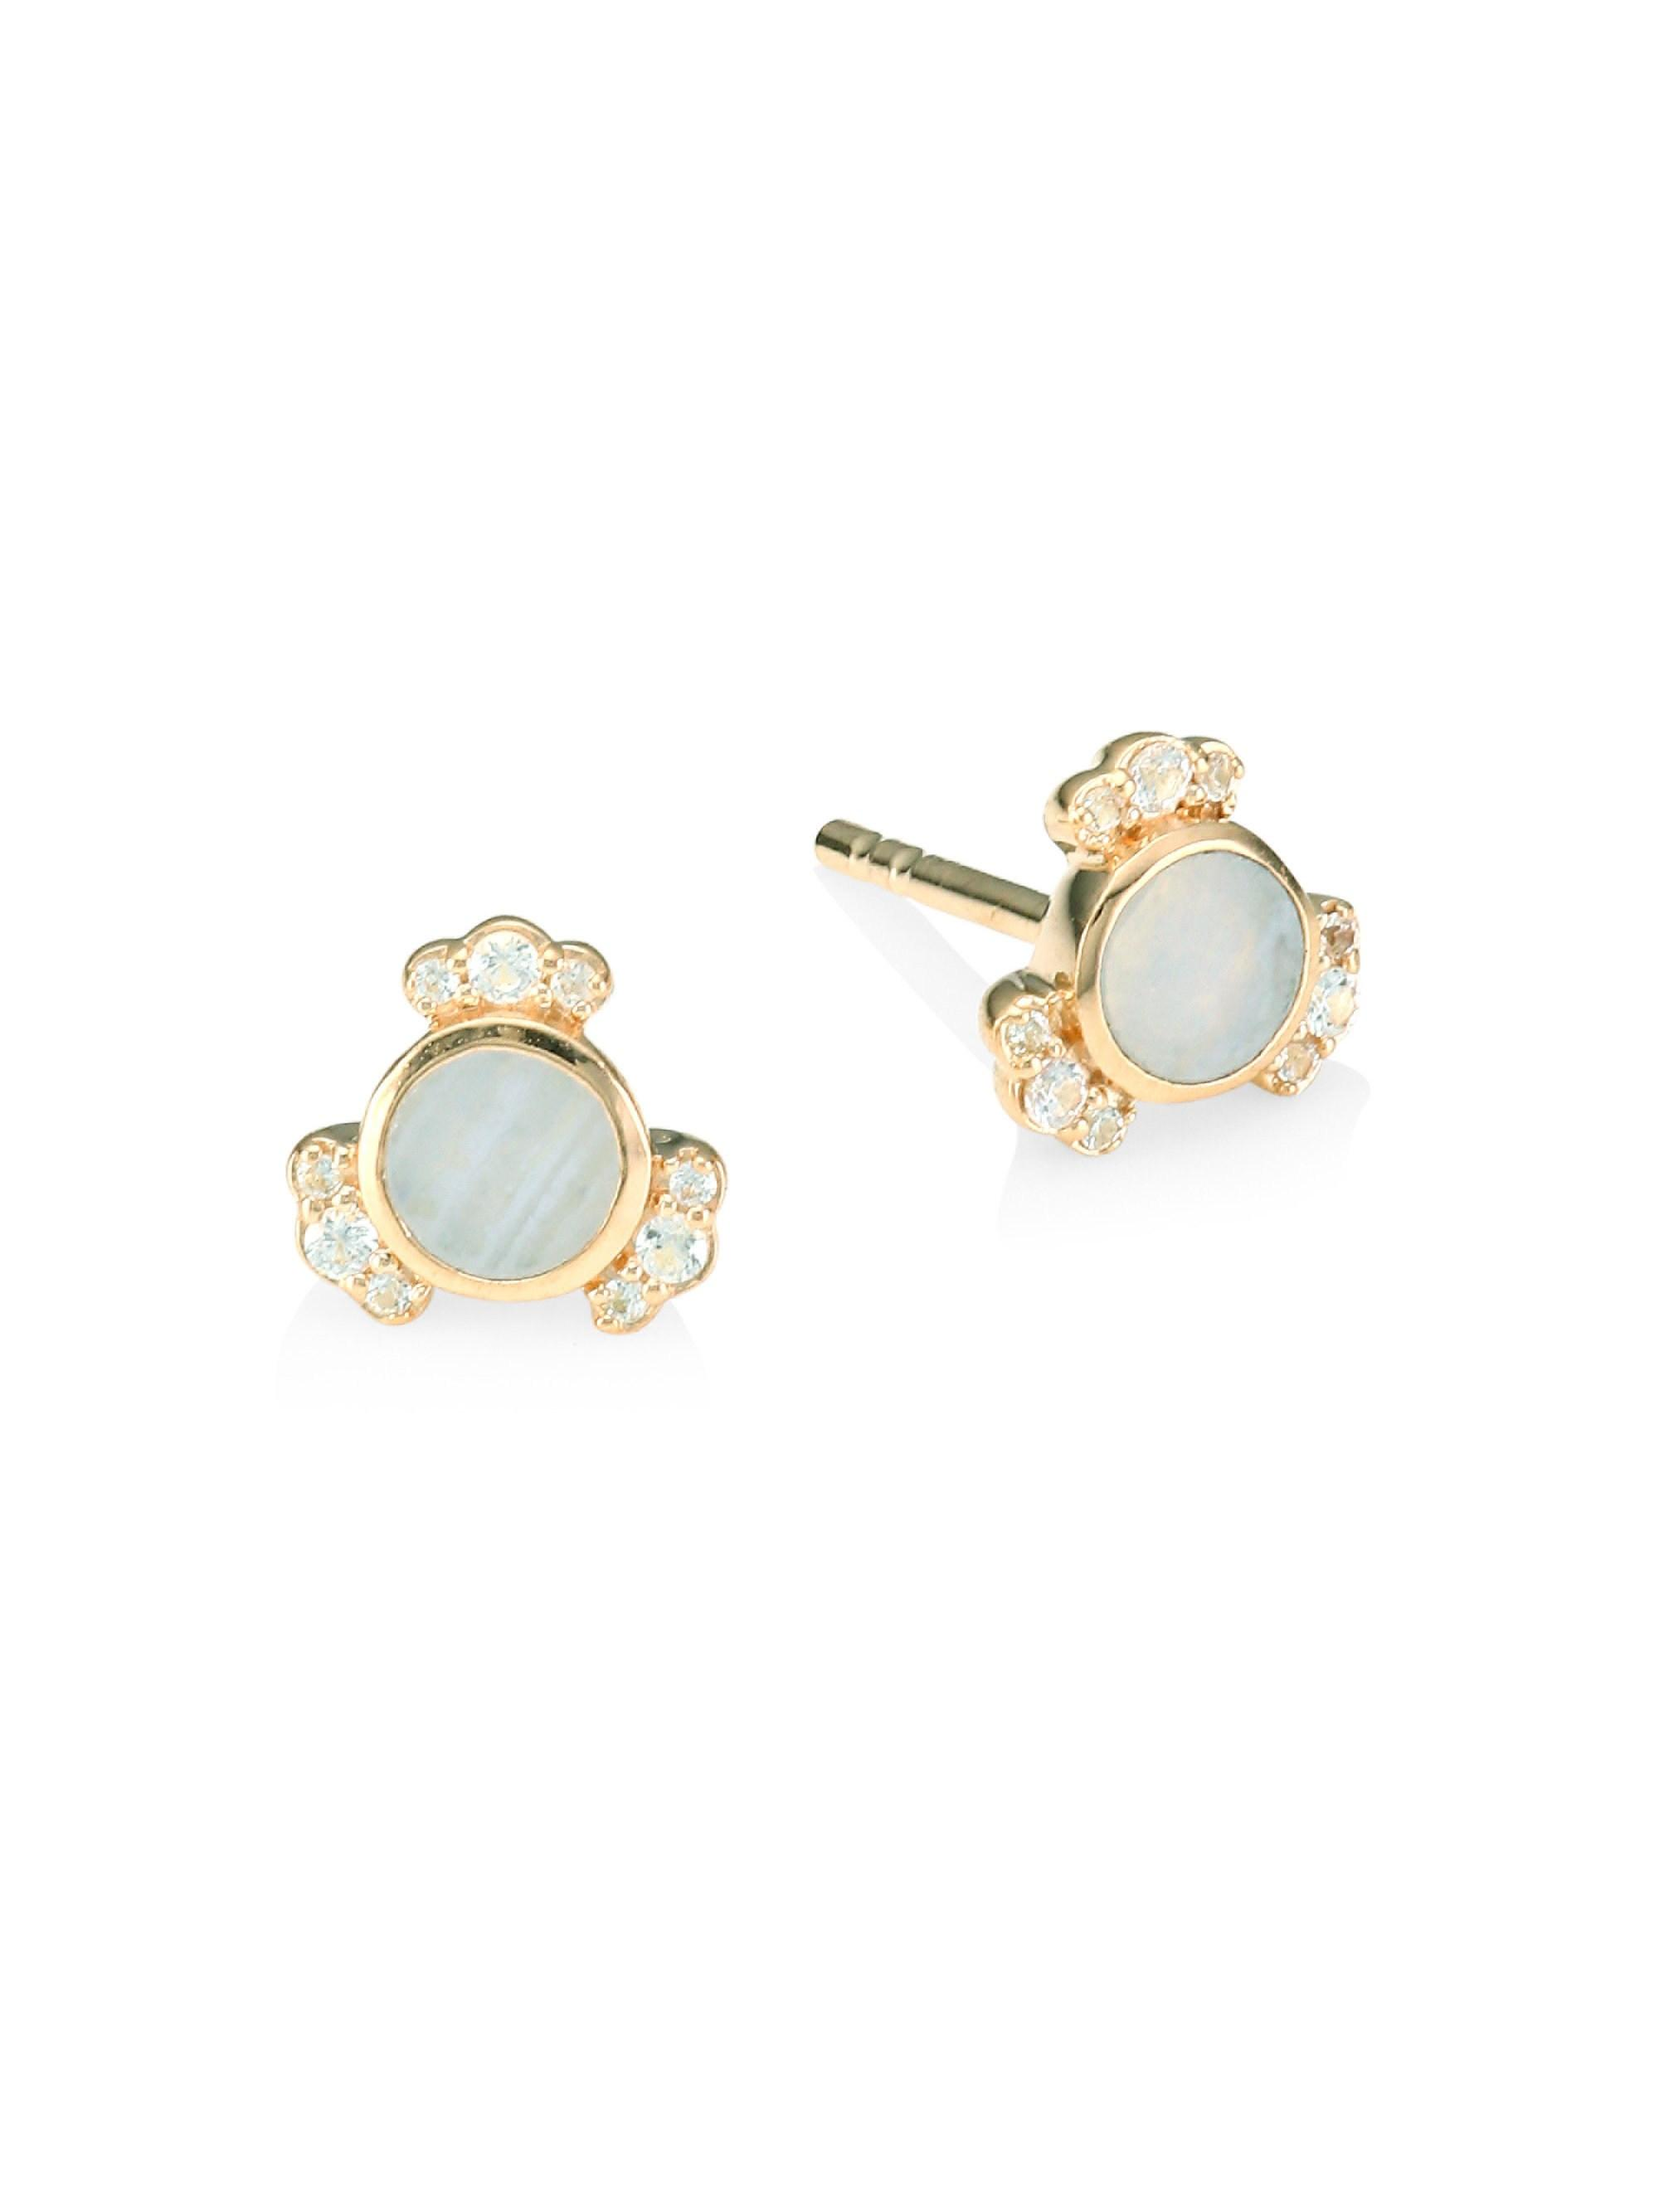 3c4b22bb2 Astley Clarke. Women's 18k Rose Goldplated Lace Agate & White Sapphire Stud  Earrings - Rose Gold